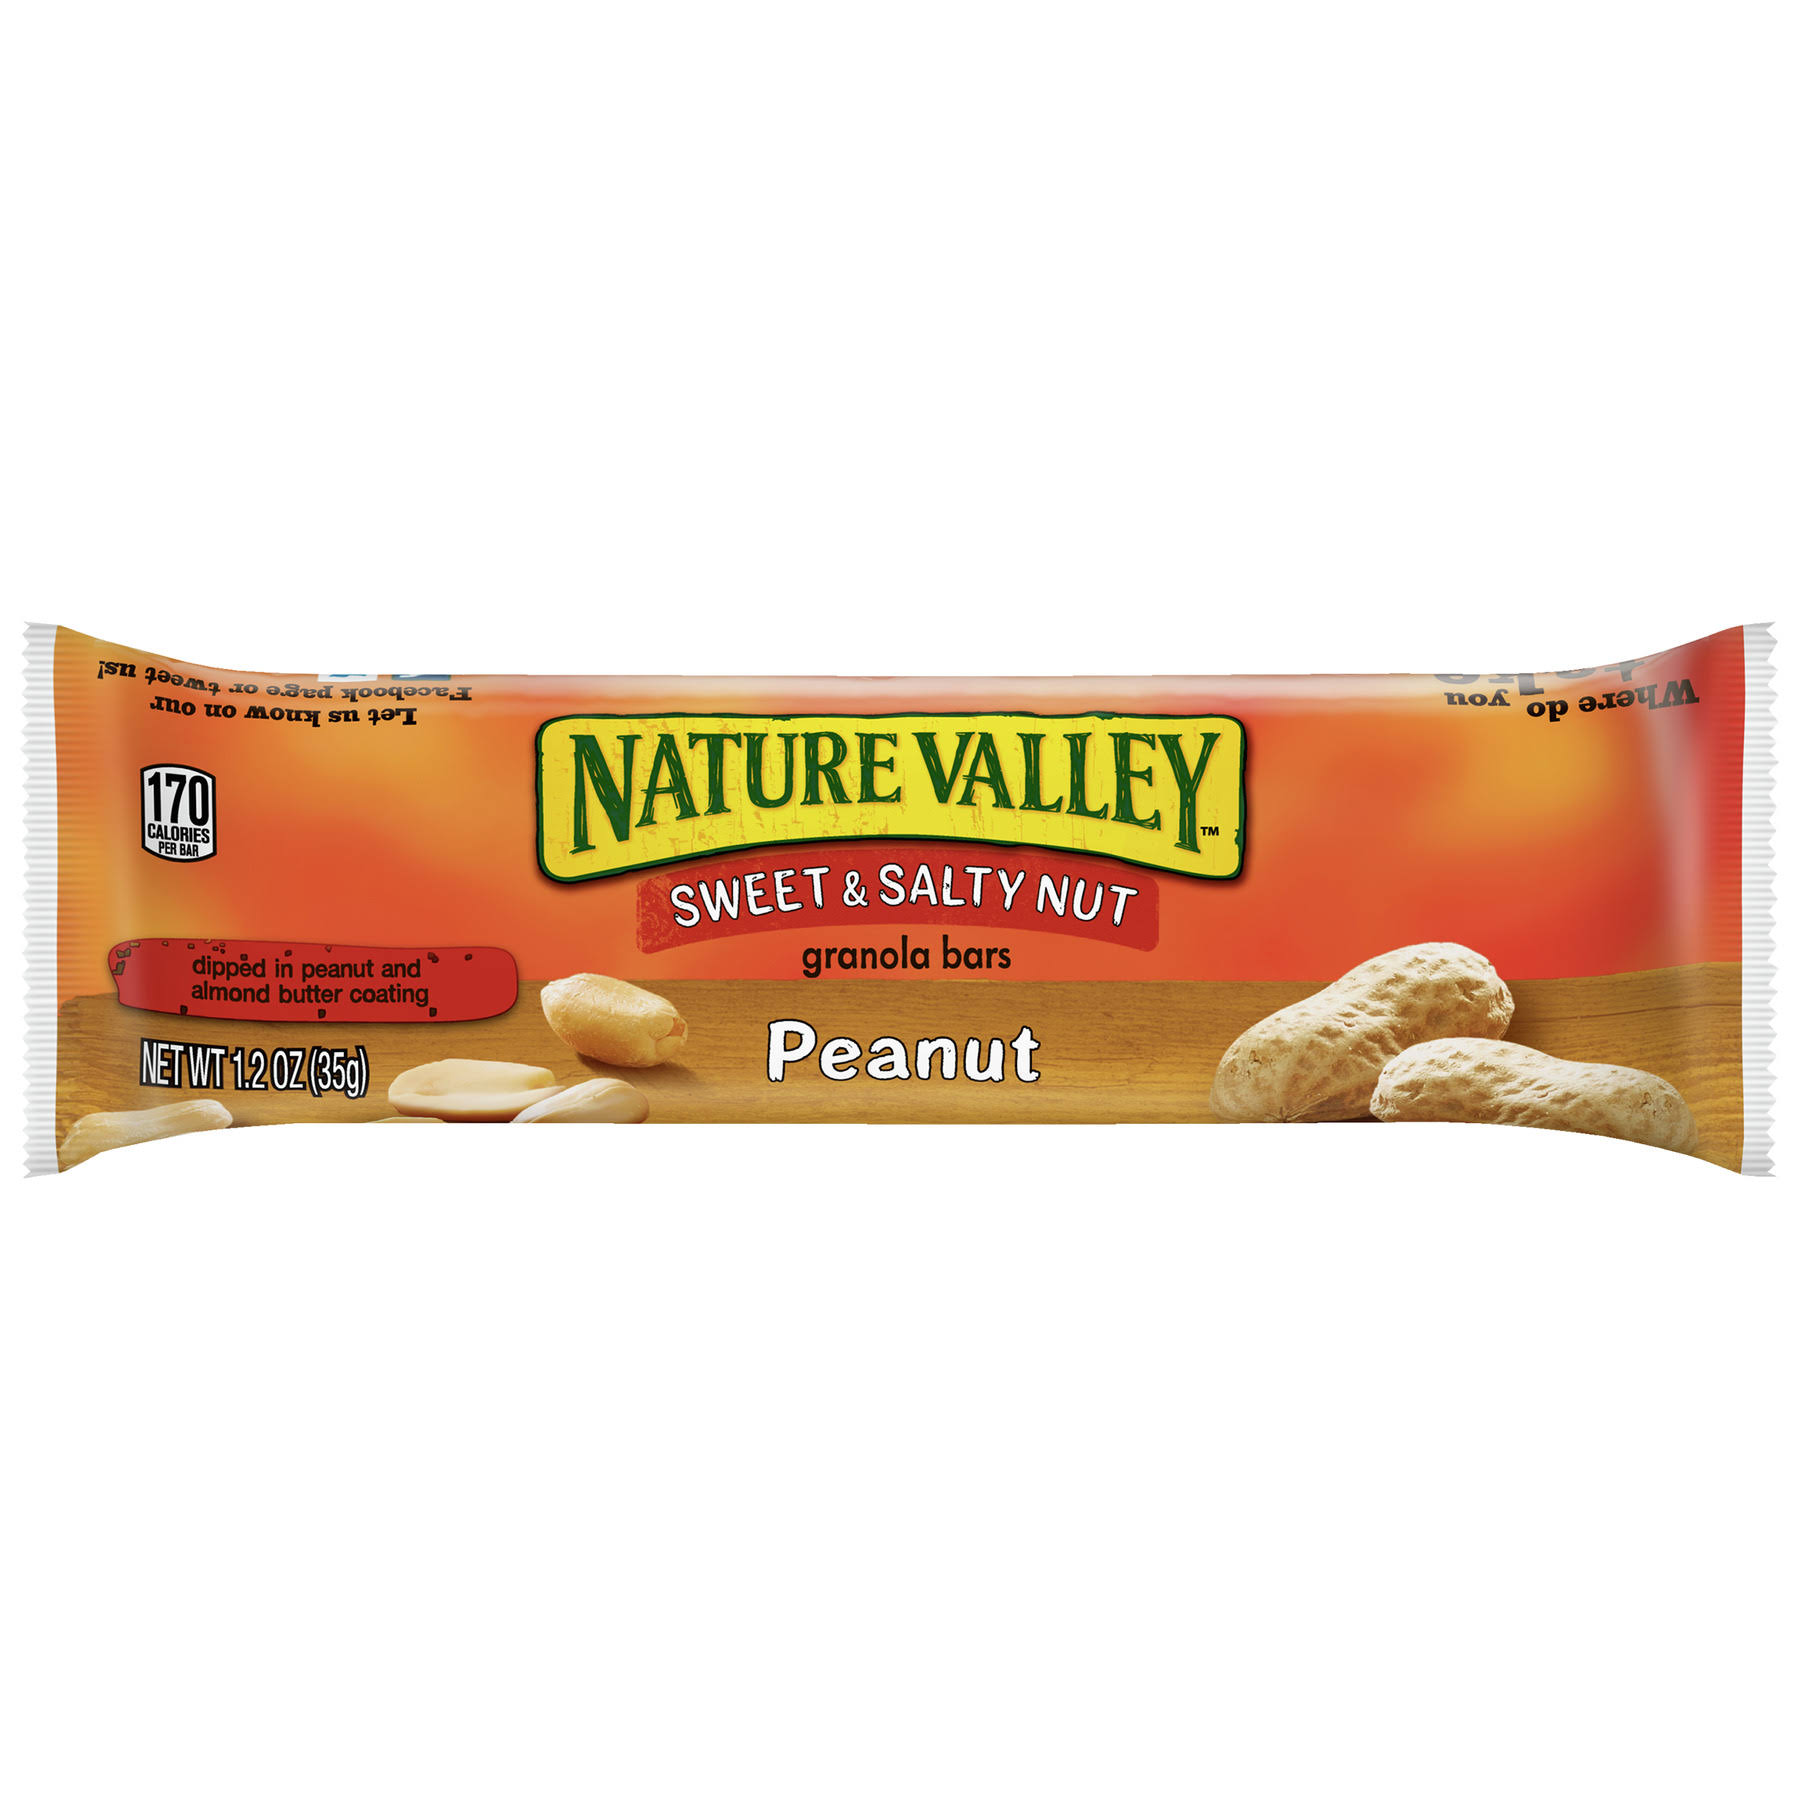 Nature Valley Sweet and Salty Nut Granola Bar - Peanut